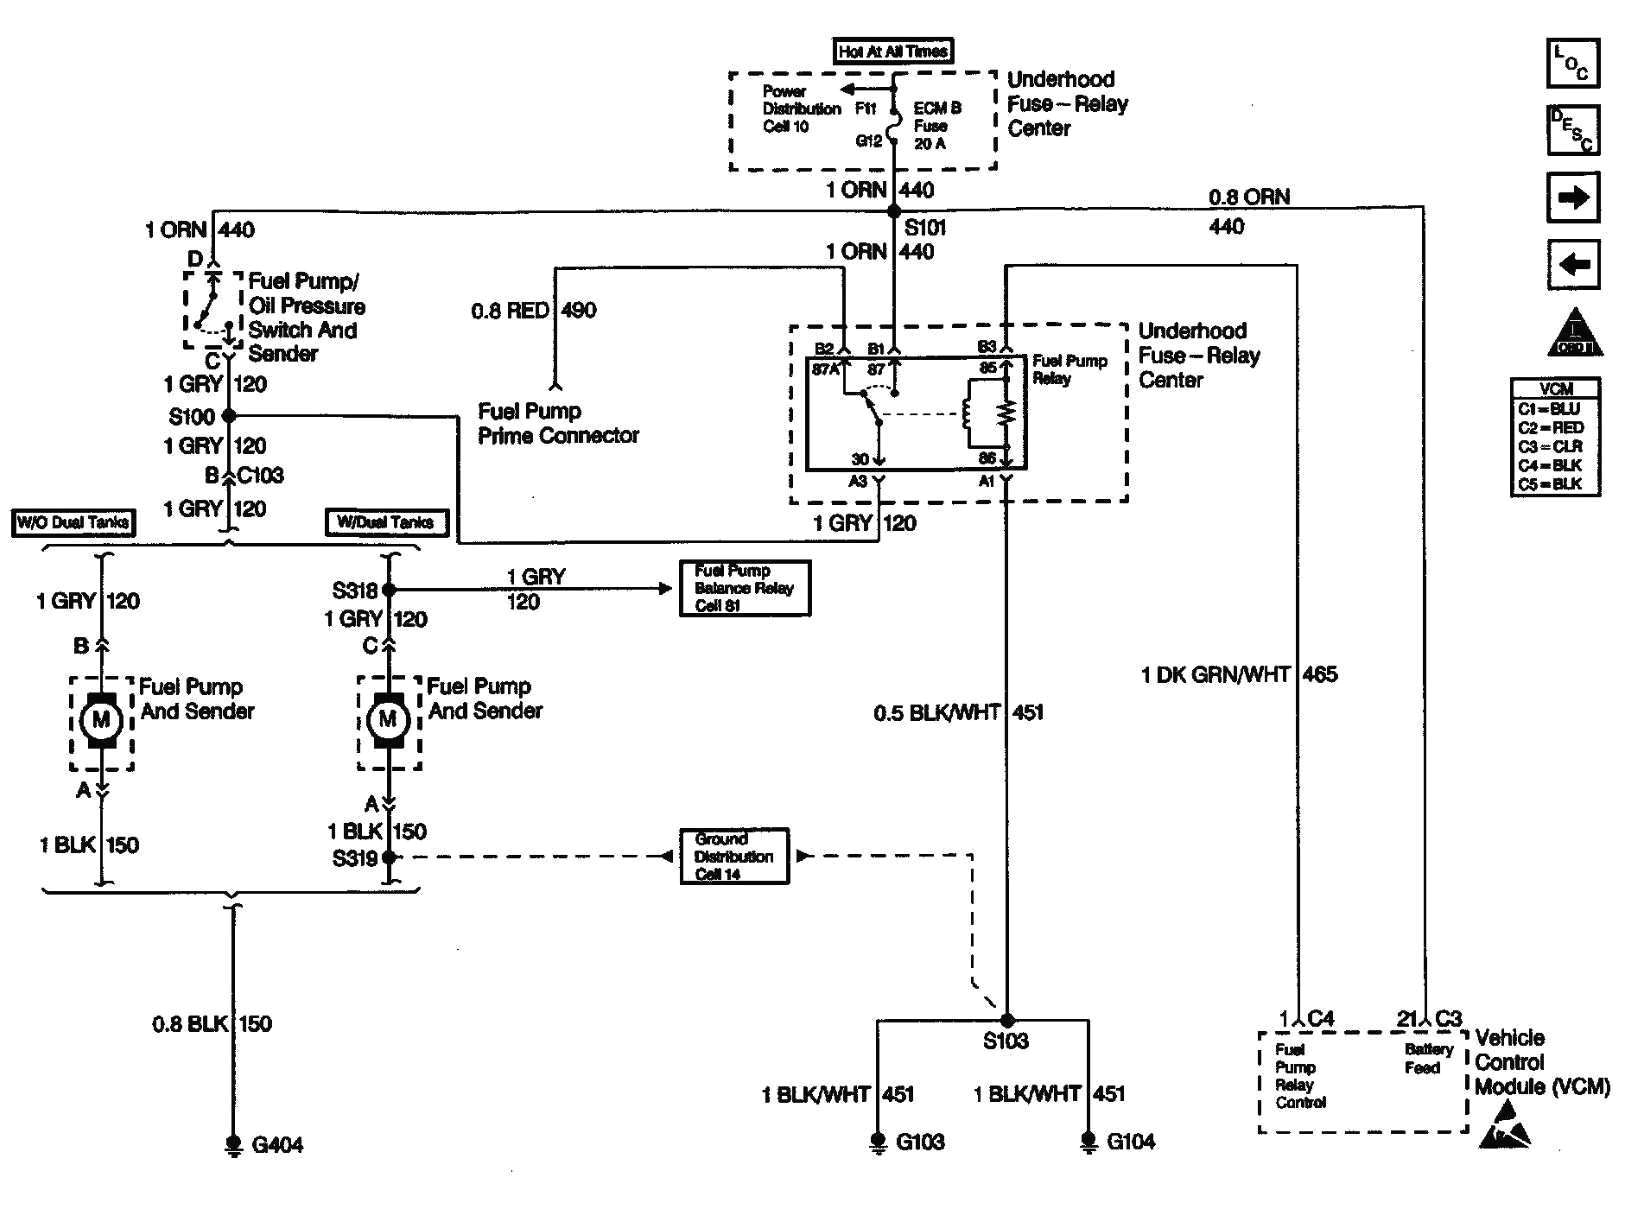 wire diagram 2003 dodge wiring diagrams show 2003 dodge ram 2500 ignition wiring diagram wiring diagram 2003 dodge ram 2500